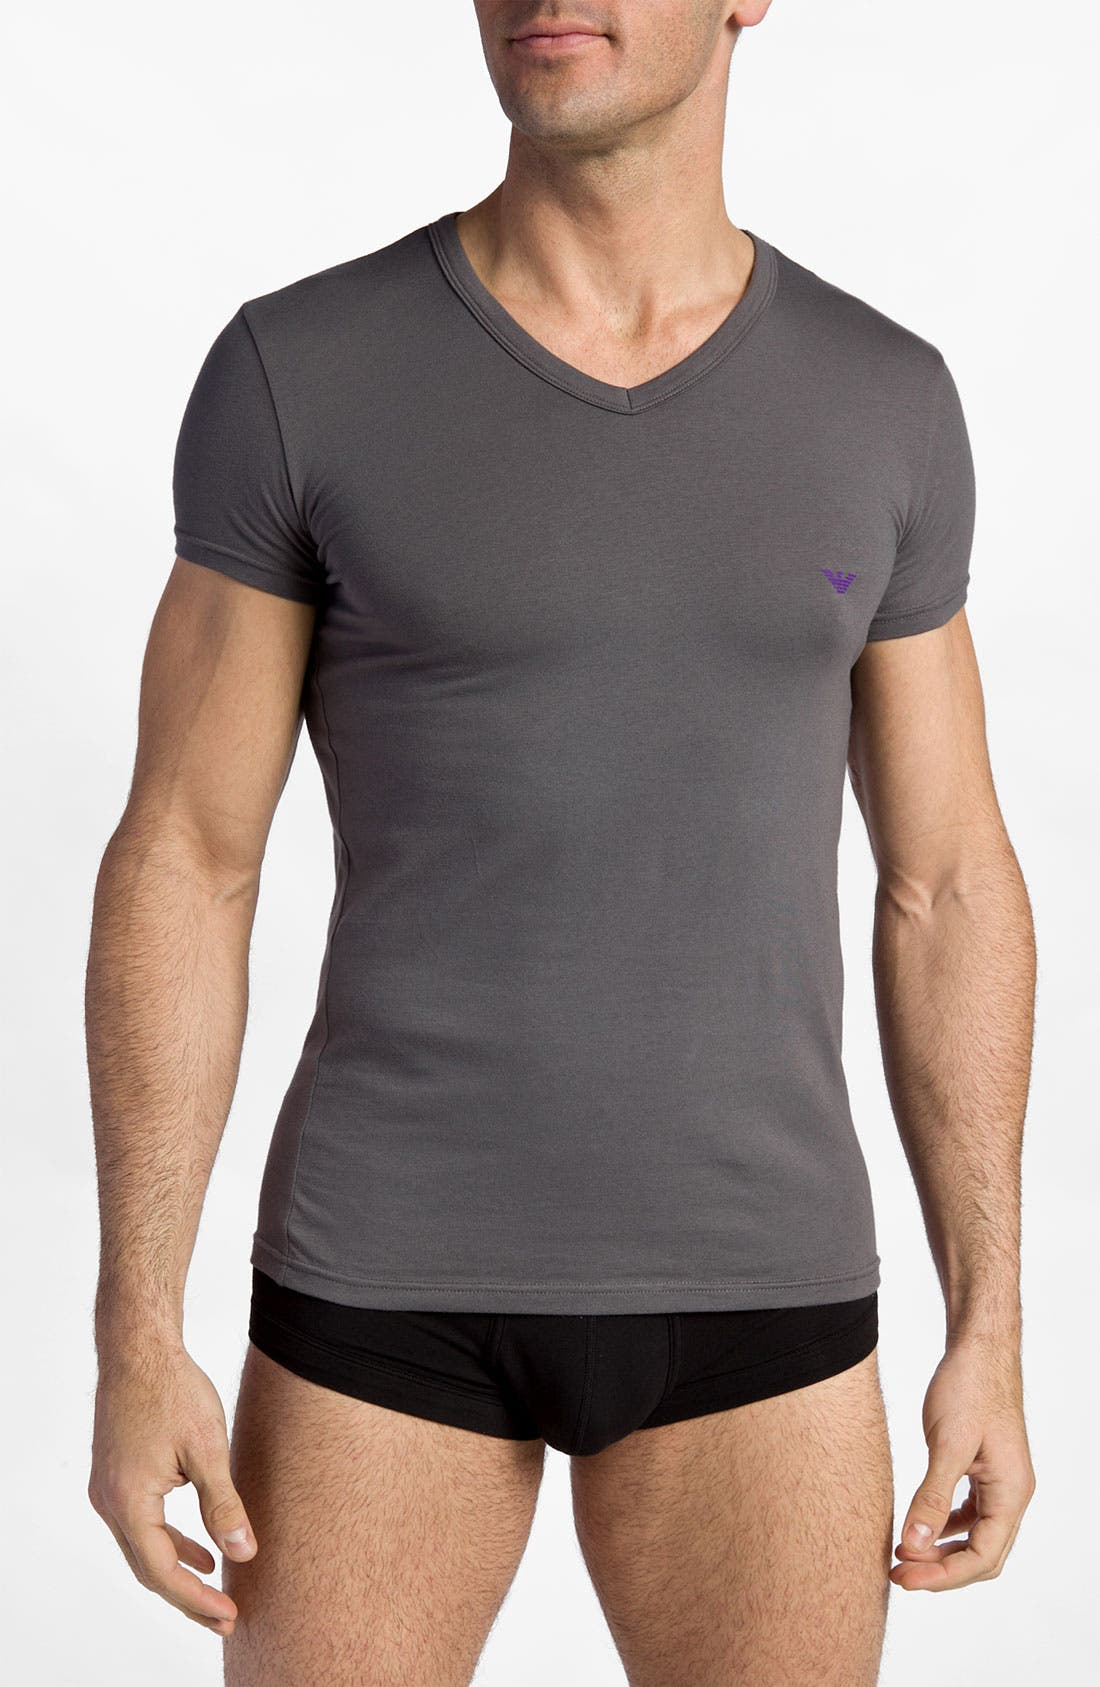 Main Image - Emporio Armani Stretch Cotton V-Neck T-Shirt